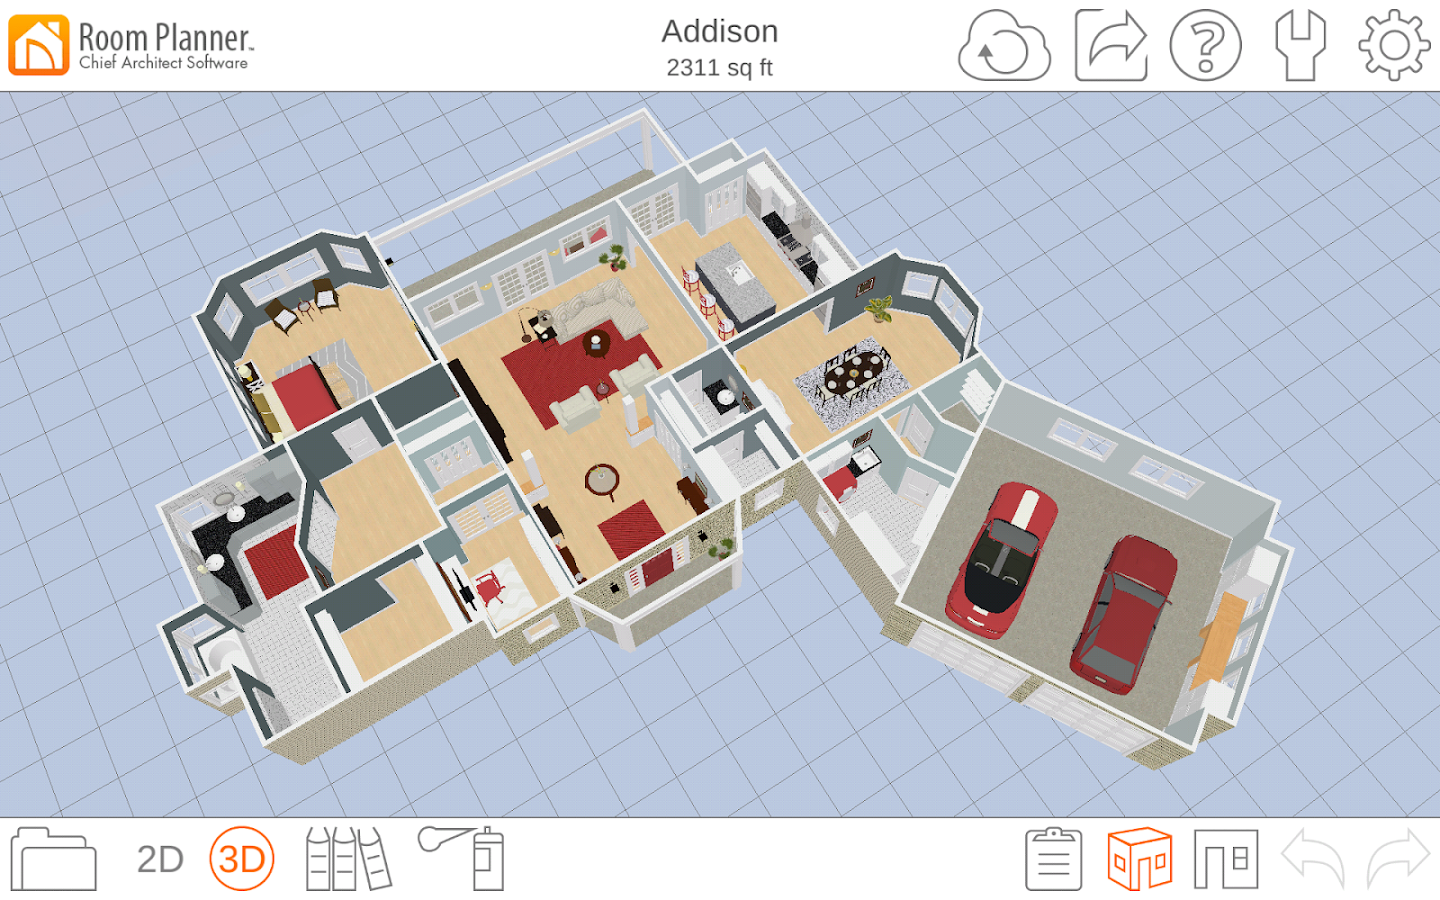 Room planner home design android apps on google play House plans app android